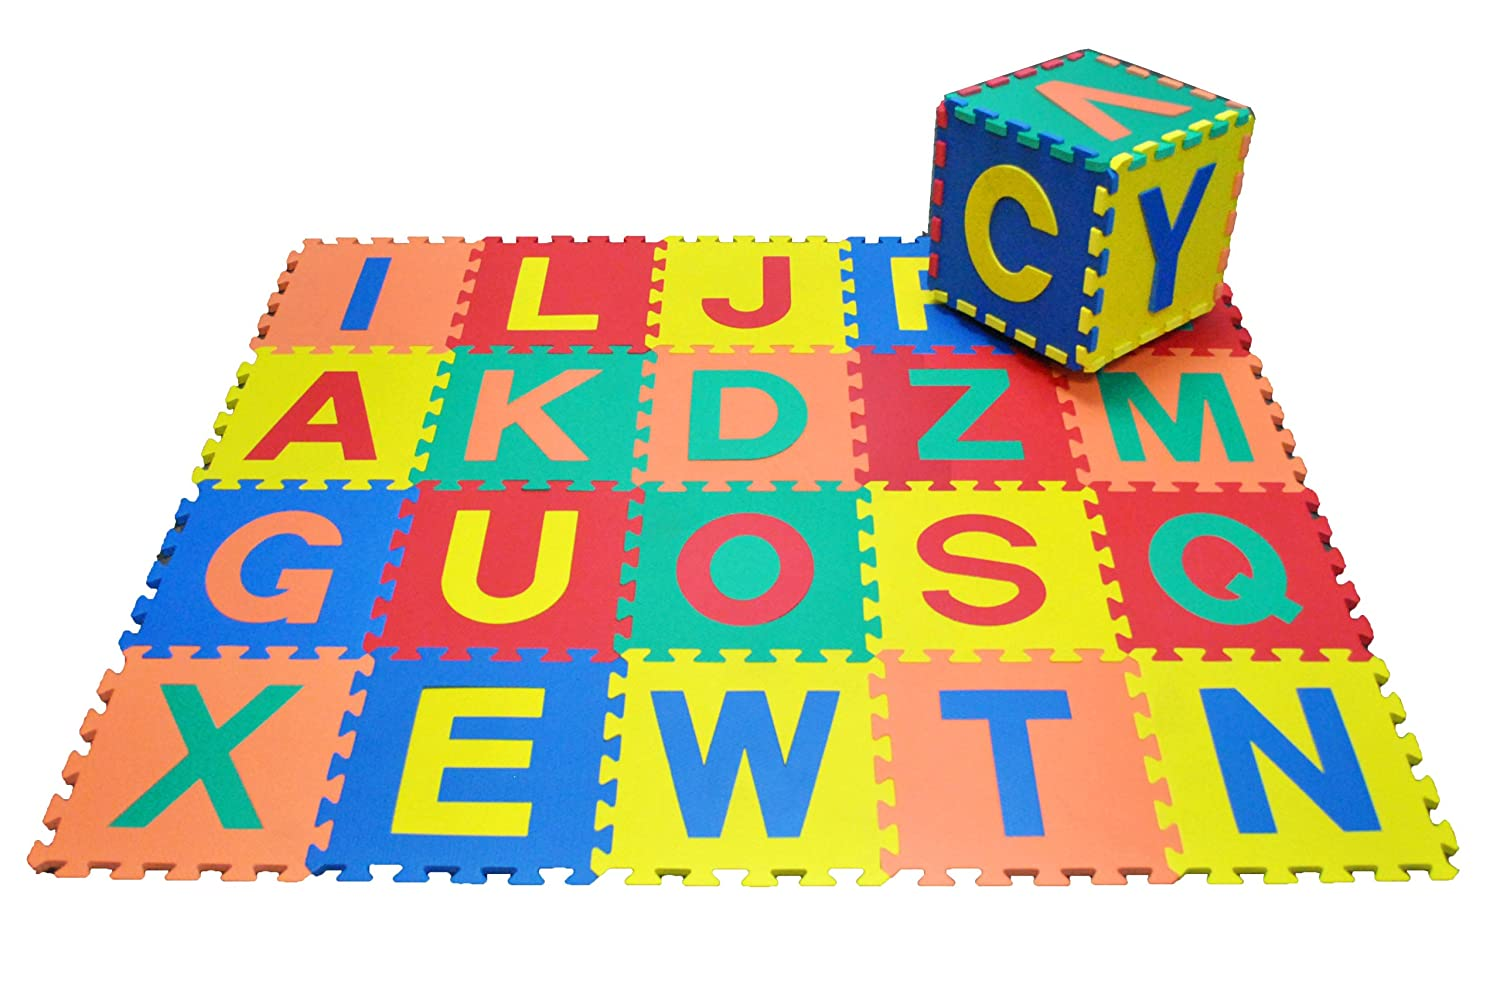 Amazon ewonderworld alphabet letters interlocking foam mats amazon ewonderworld alphabet letters interlocking foam mats a z each tile 12 x 12 x 916 extra thick tiled puzzle play mats baby dailygadgetfo Images